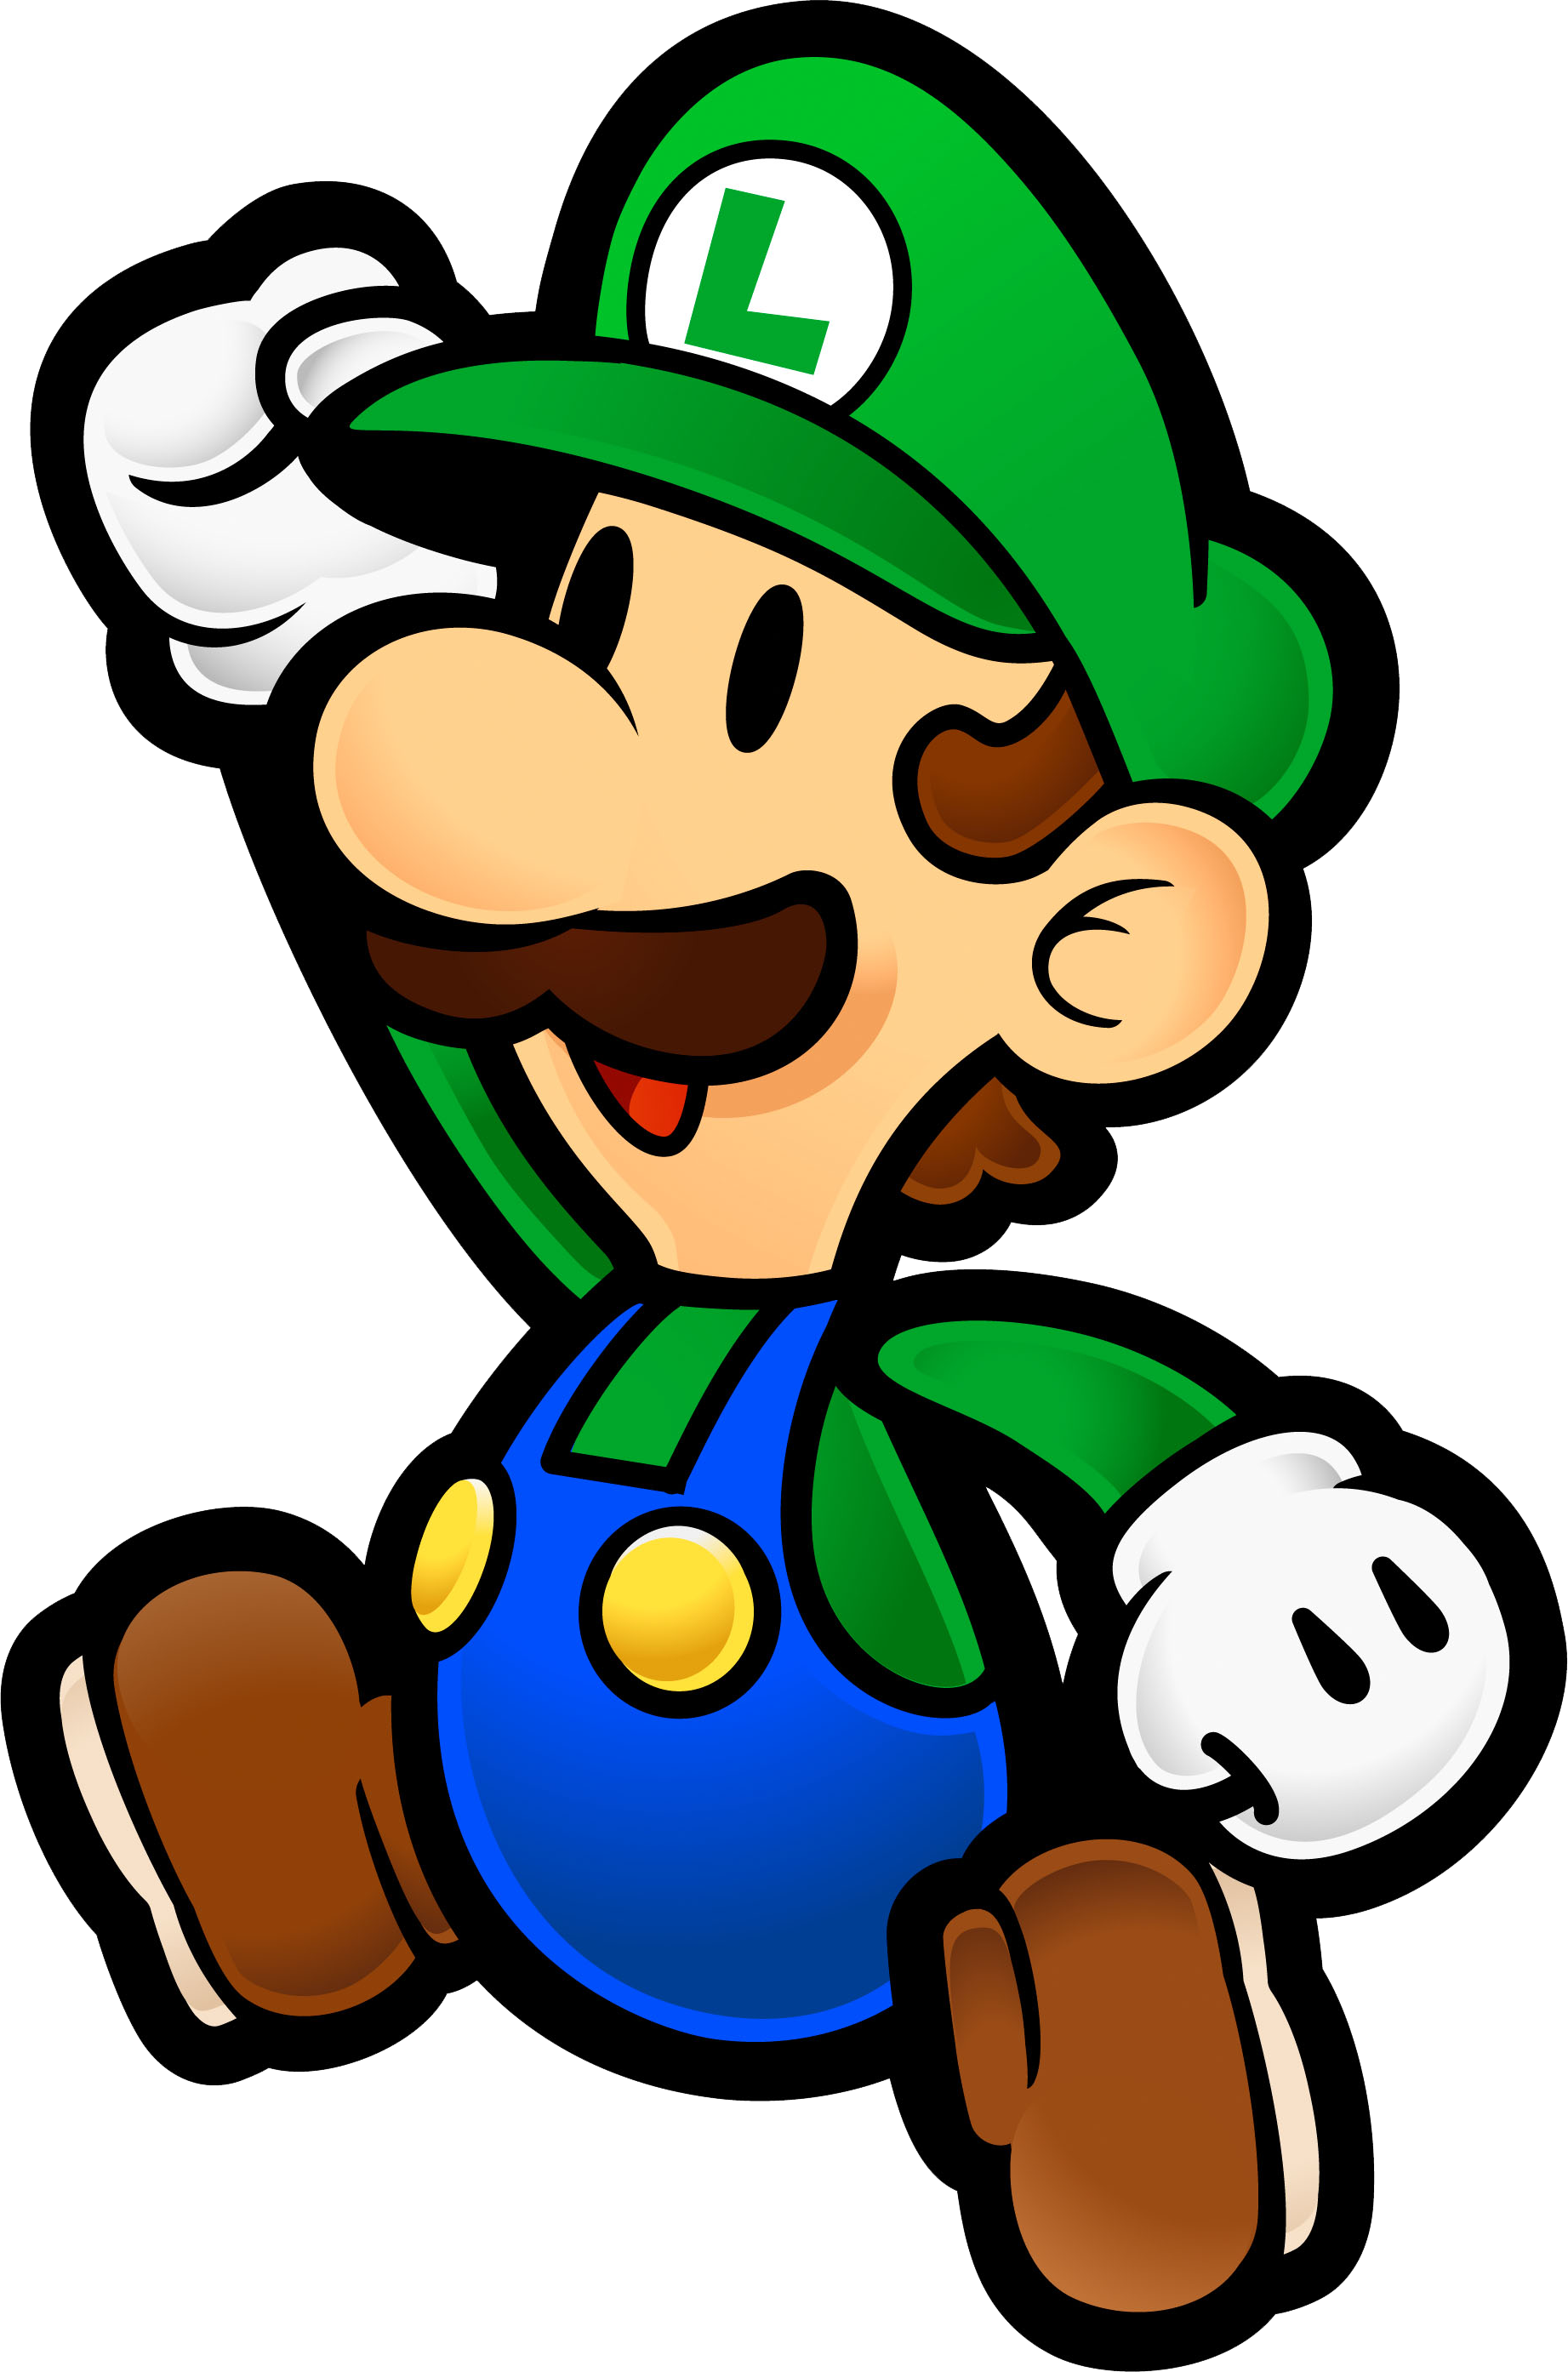 Luigi Coloring Pages Just Luigi | Luigi Coloring Pages | Ausmalbilder,  Malvorlagen für kinder, Zeichnungen | 2788x1843